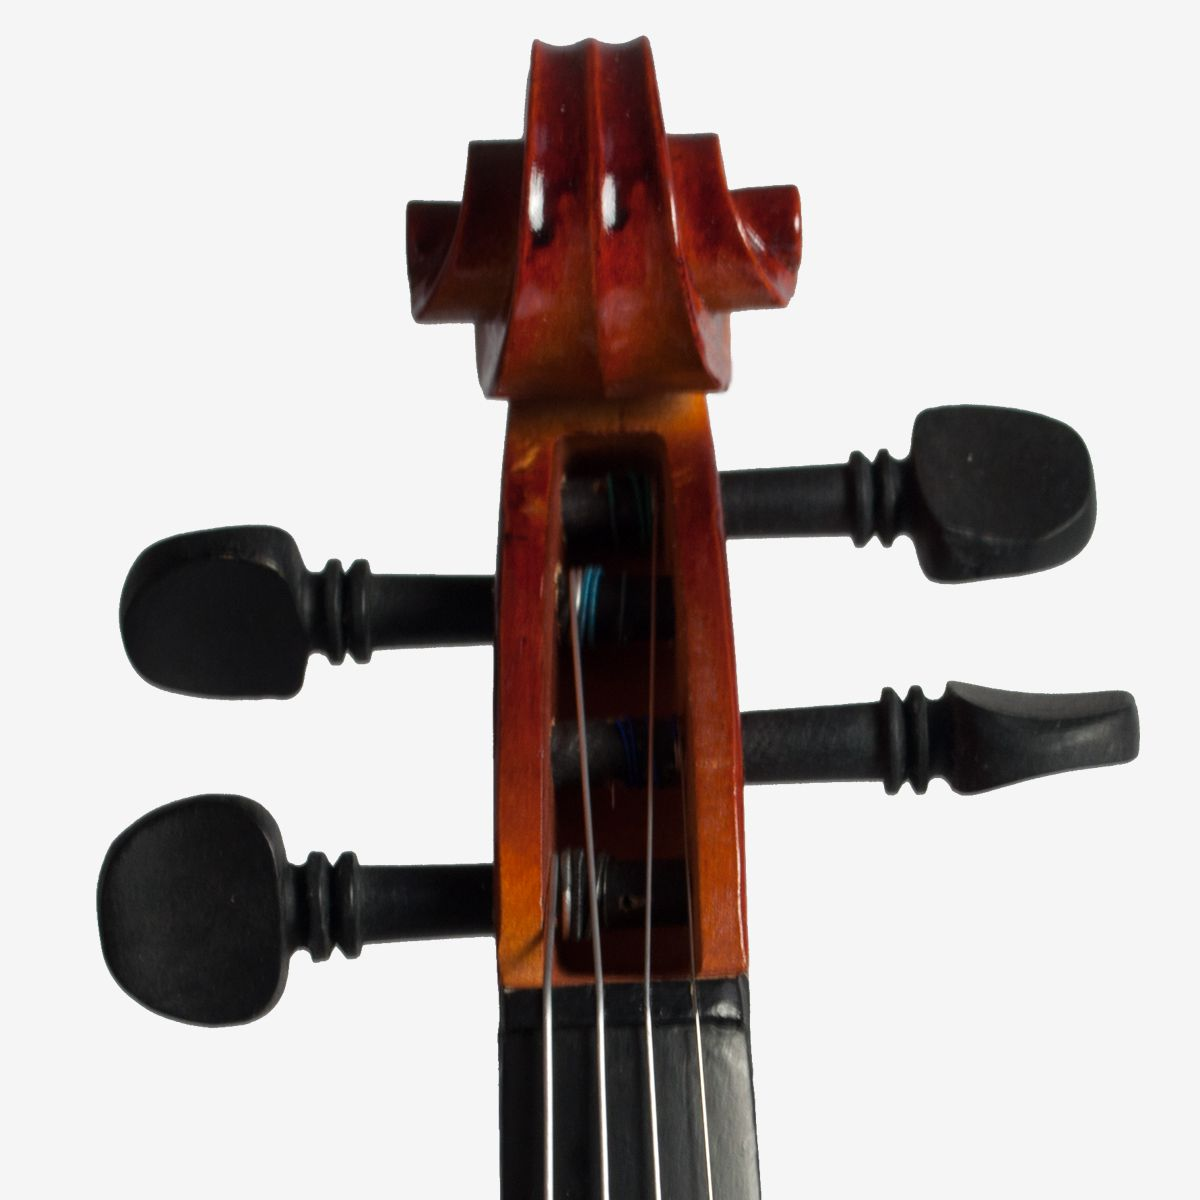 Violino Turbo Elite 1/2 - Acústico